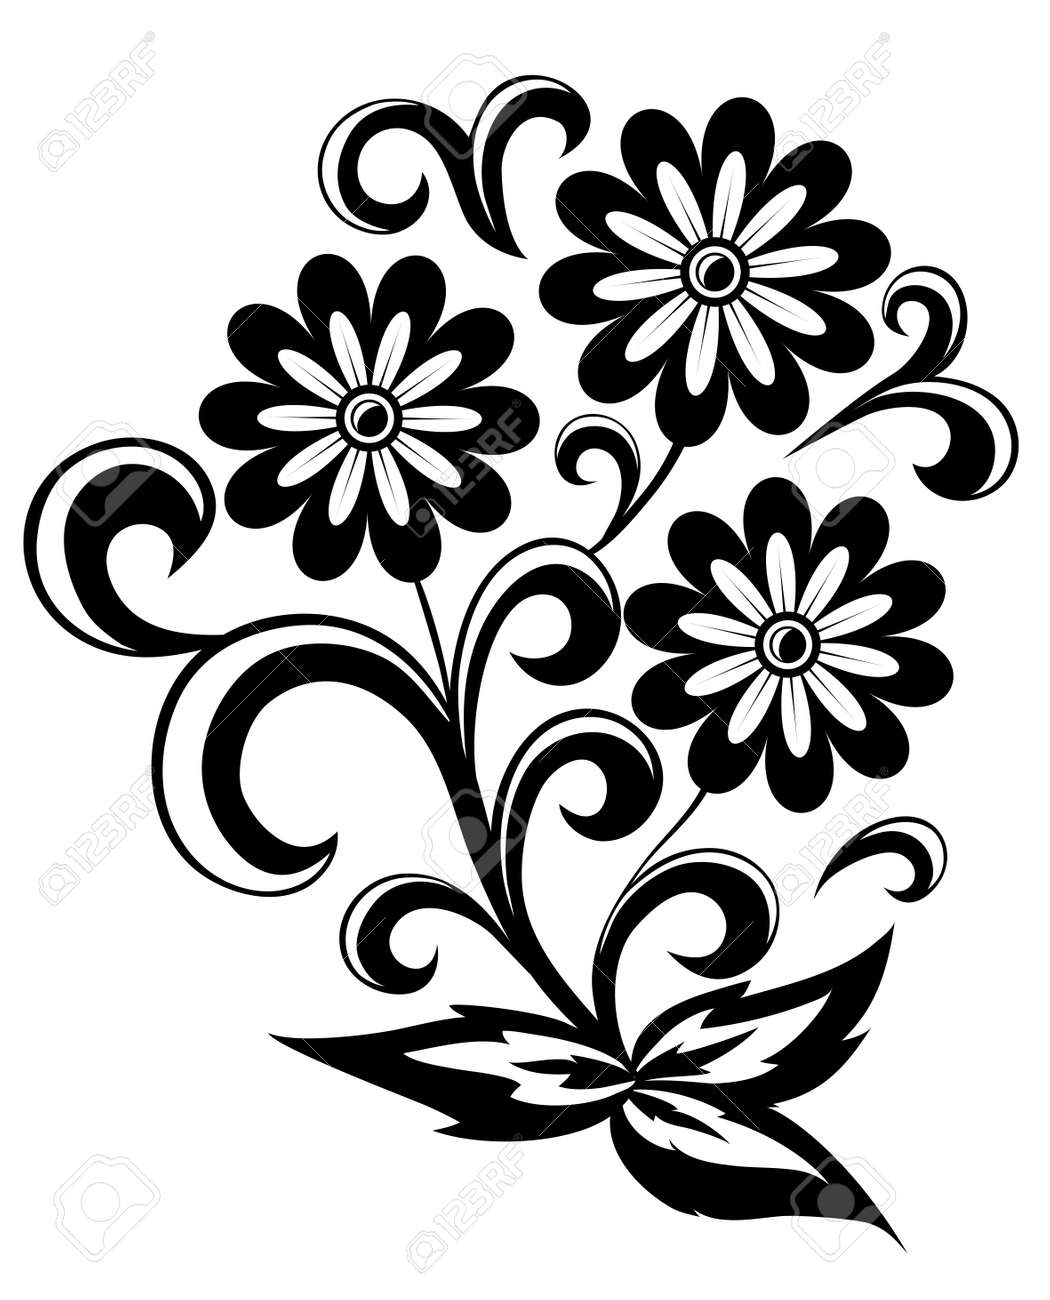 black and white abstract flower with leaves and swirls isolated on white background stock vector